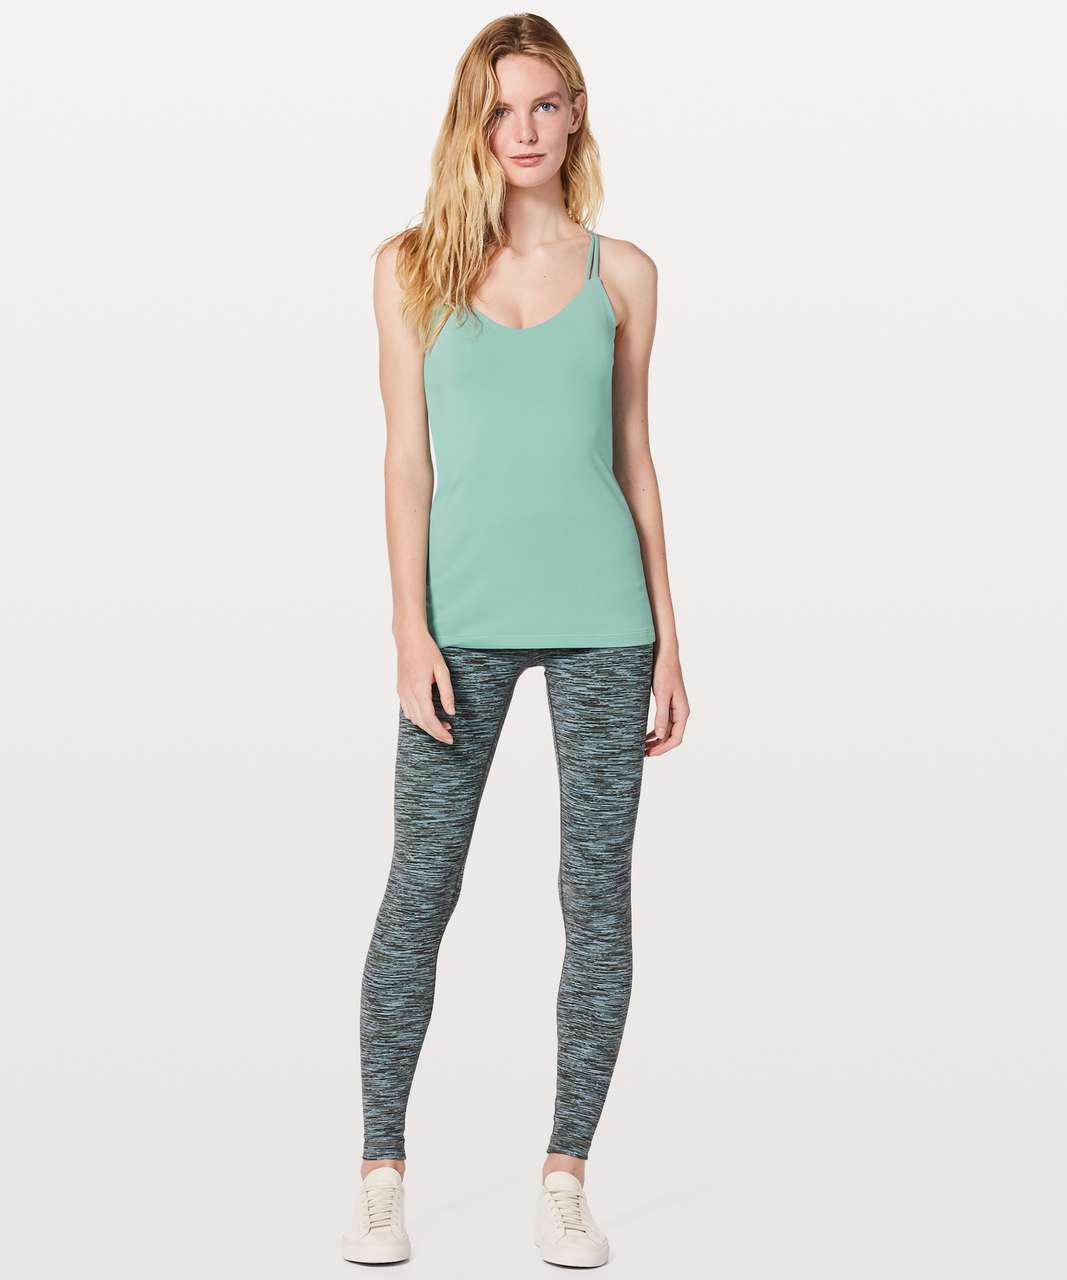 Lululemon Create Your Calm Tank - Rip Tide